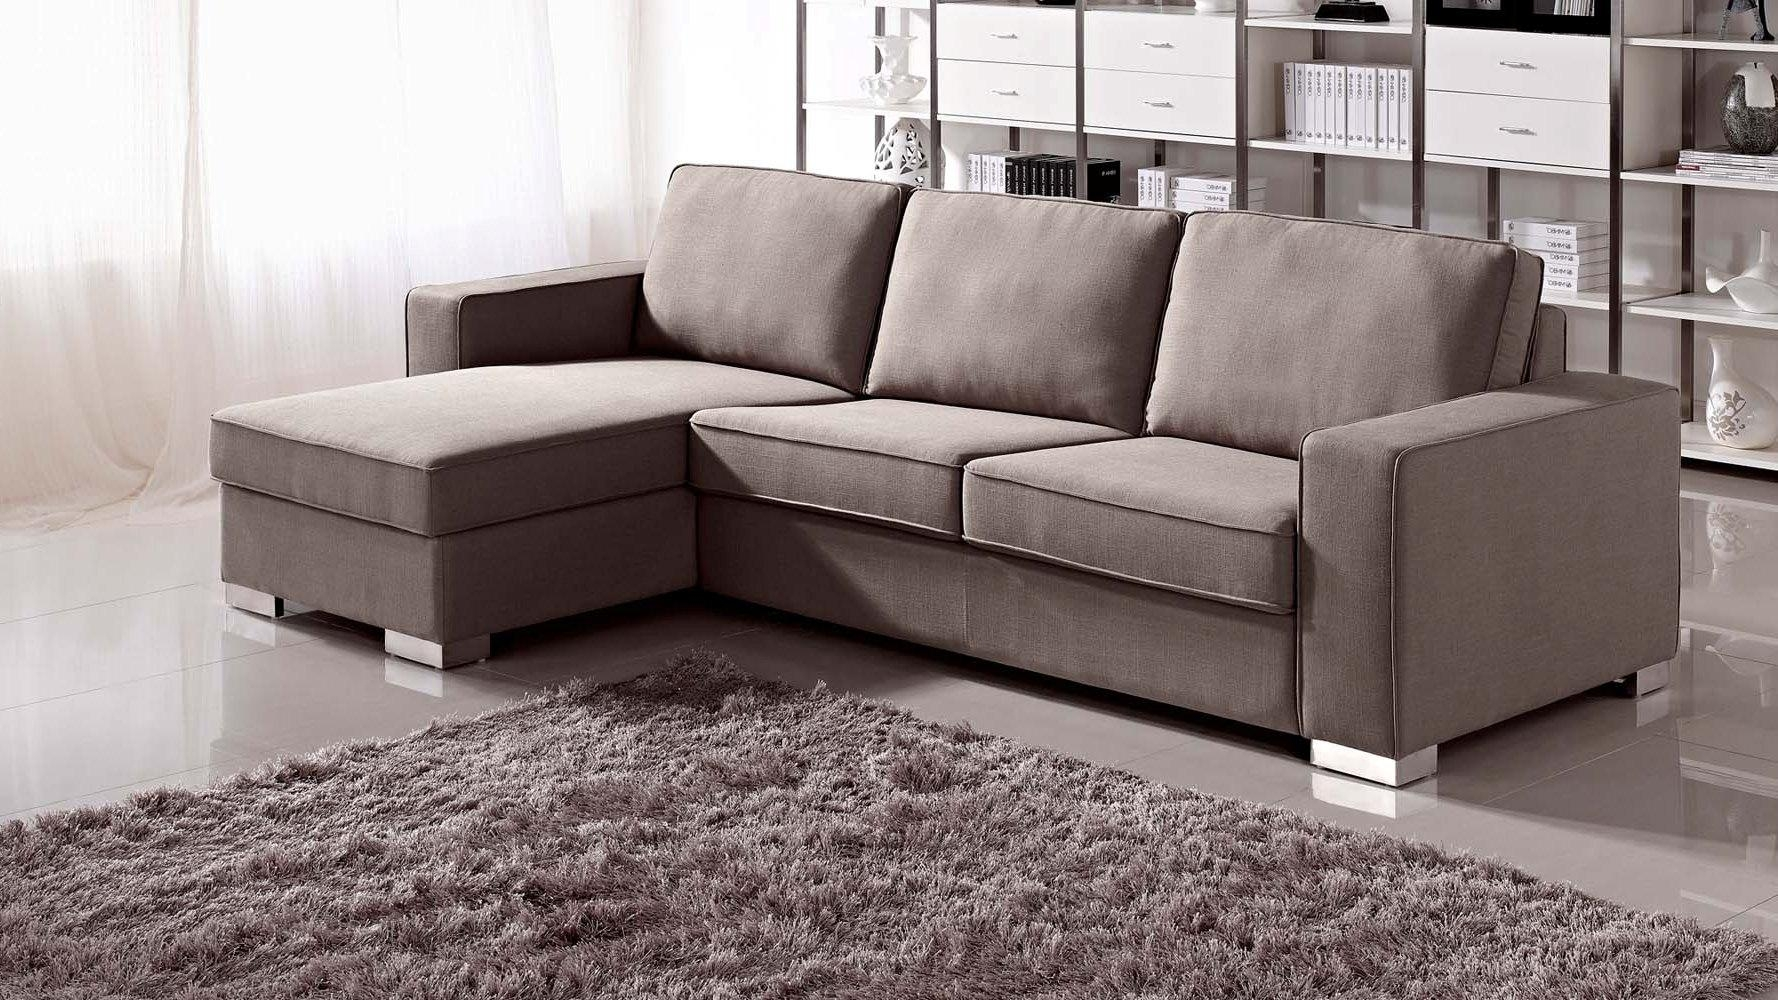 Furniture: Wondrous Alluring Sectional With Sleeper For Home With Regard To Sectional Sofa Beds (View 16 of 20)